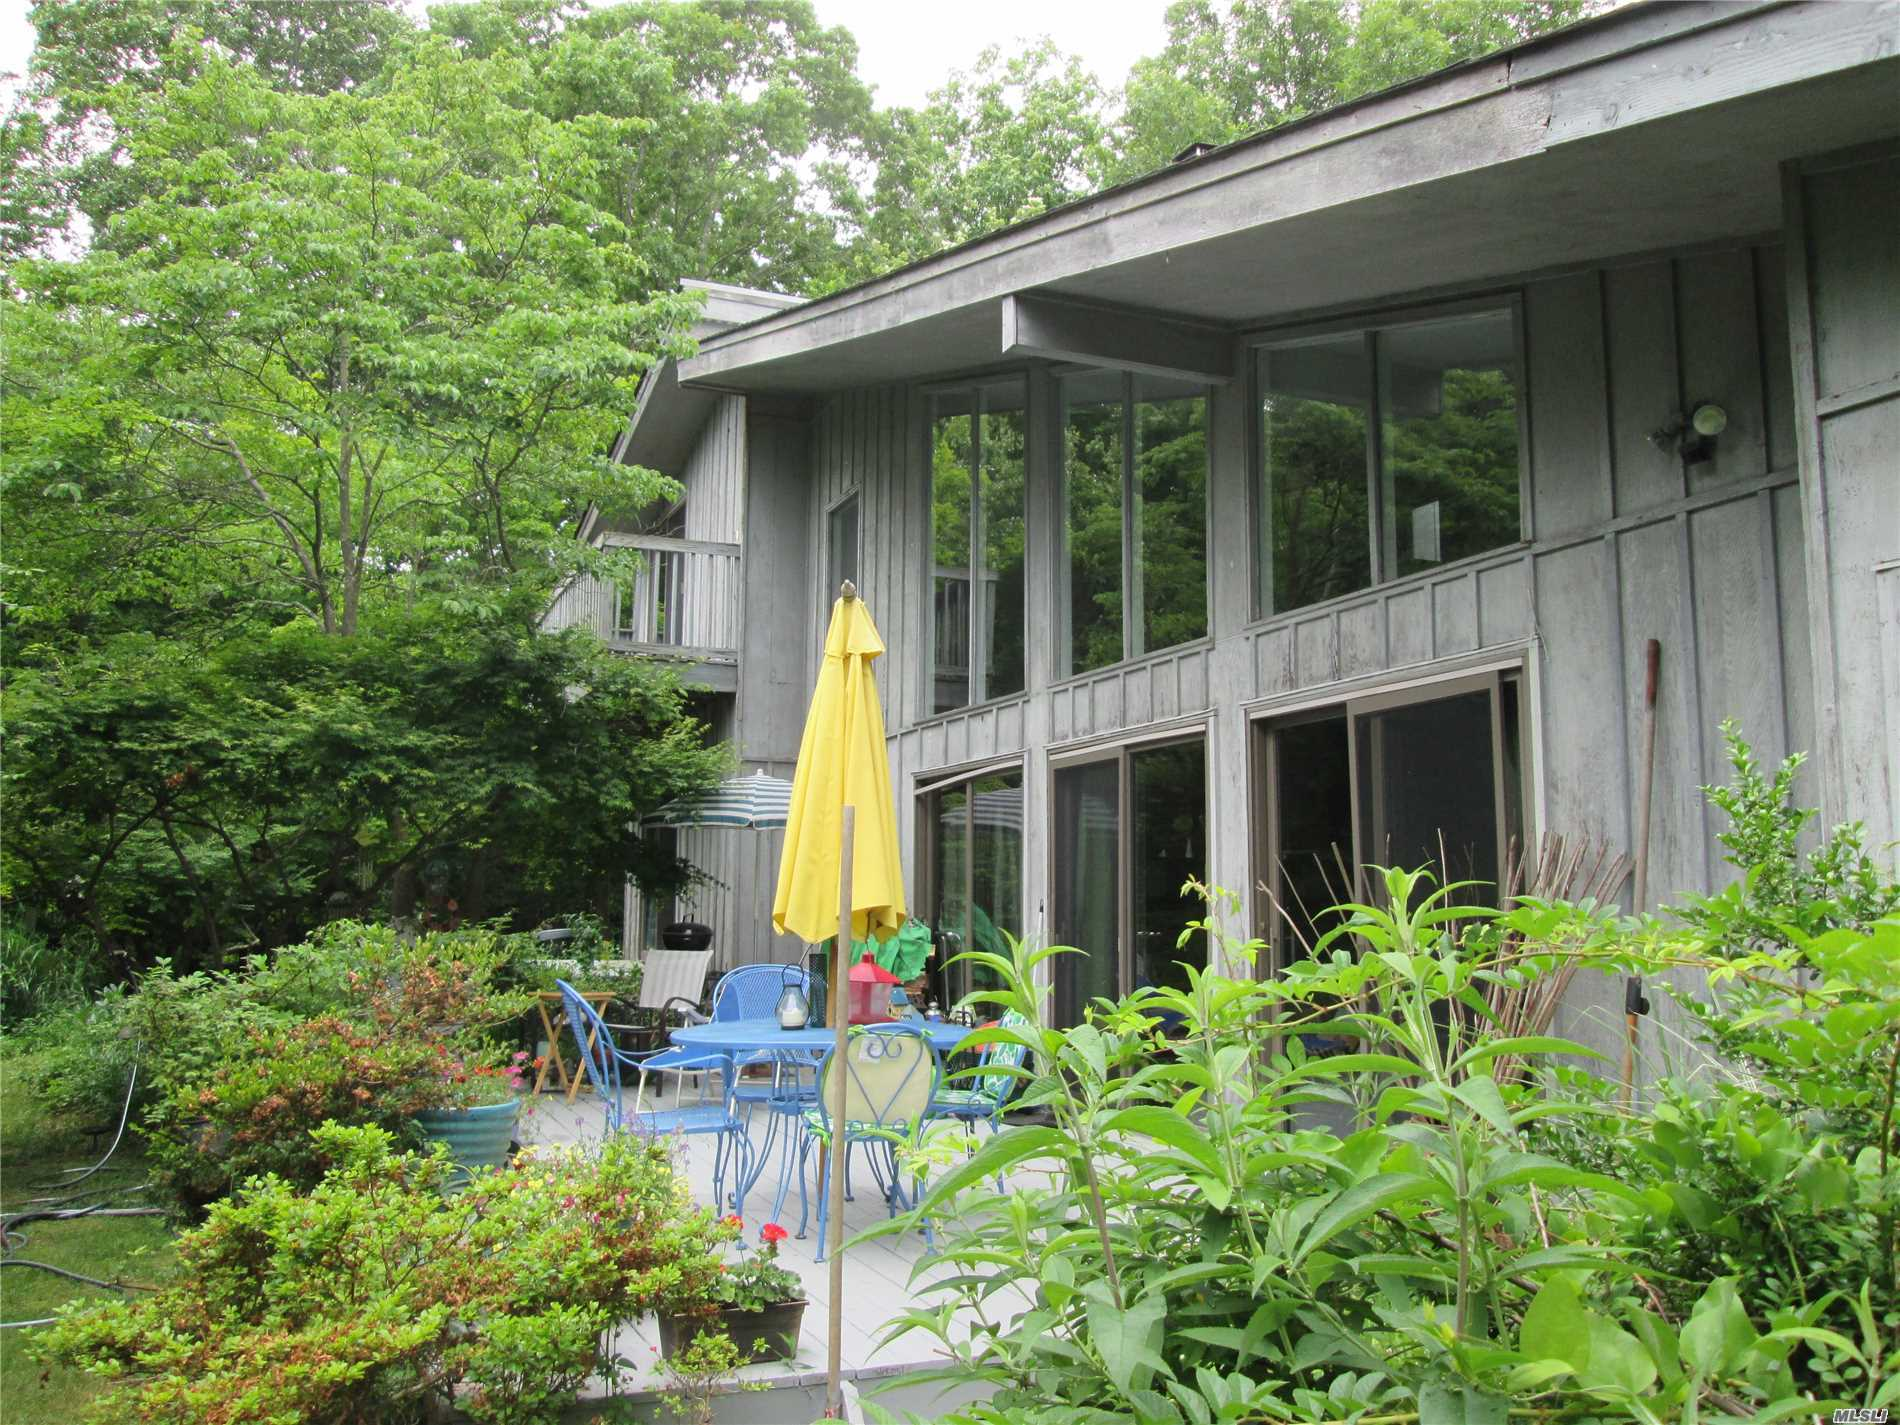 Location, Location, Location!! Stroll To The Quaint Village & The Ferry From This Private & Idyllic Setting South Of South Country. This 4 Bedroom 2 Full Bath Open Flr Plan Contemporary Style Home Awaits Your Arrival. Sun Filled Rooms From Large Custom Windows, Hdwd Flrs, Lg Fplc, New Cac, Ss Appl's, 1 Car Gar., Solar Panels & So Much More! Don't Miss This Opportunity & Take Advantage Of All The Amenities The Village Has To Offer; Golf, Shopping, Private Beach & Restaurants. Come See For Yourself!